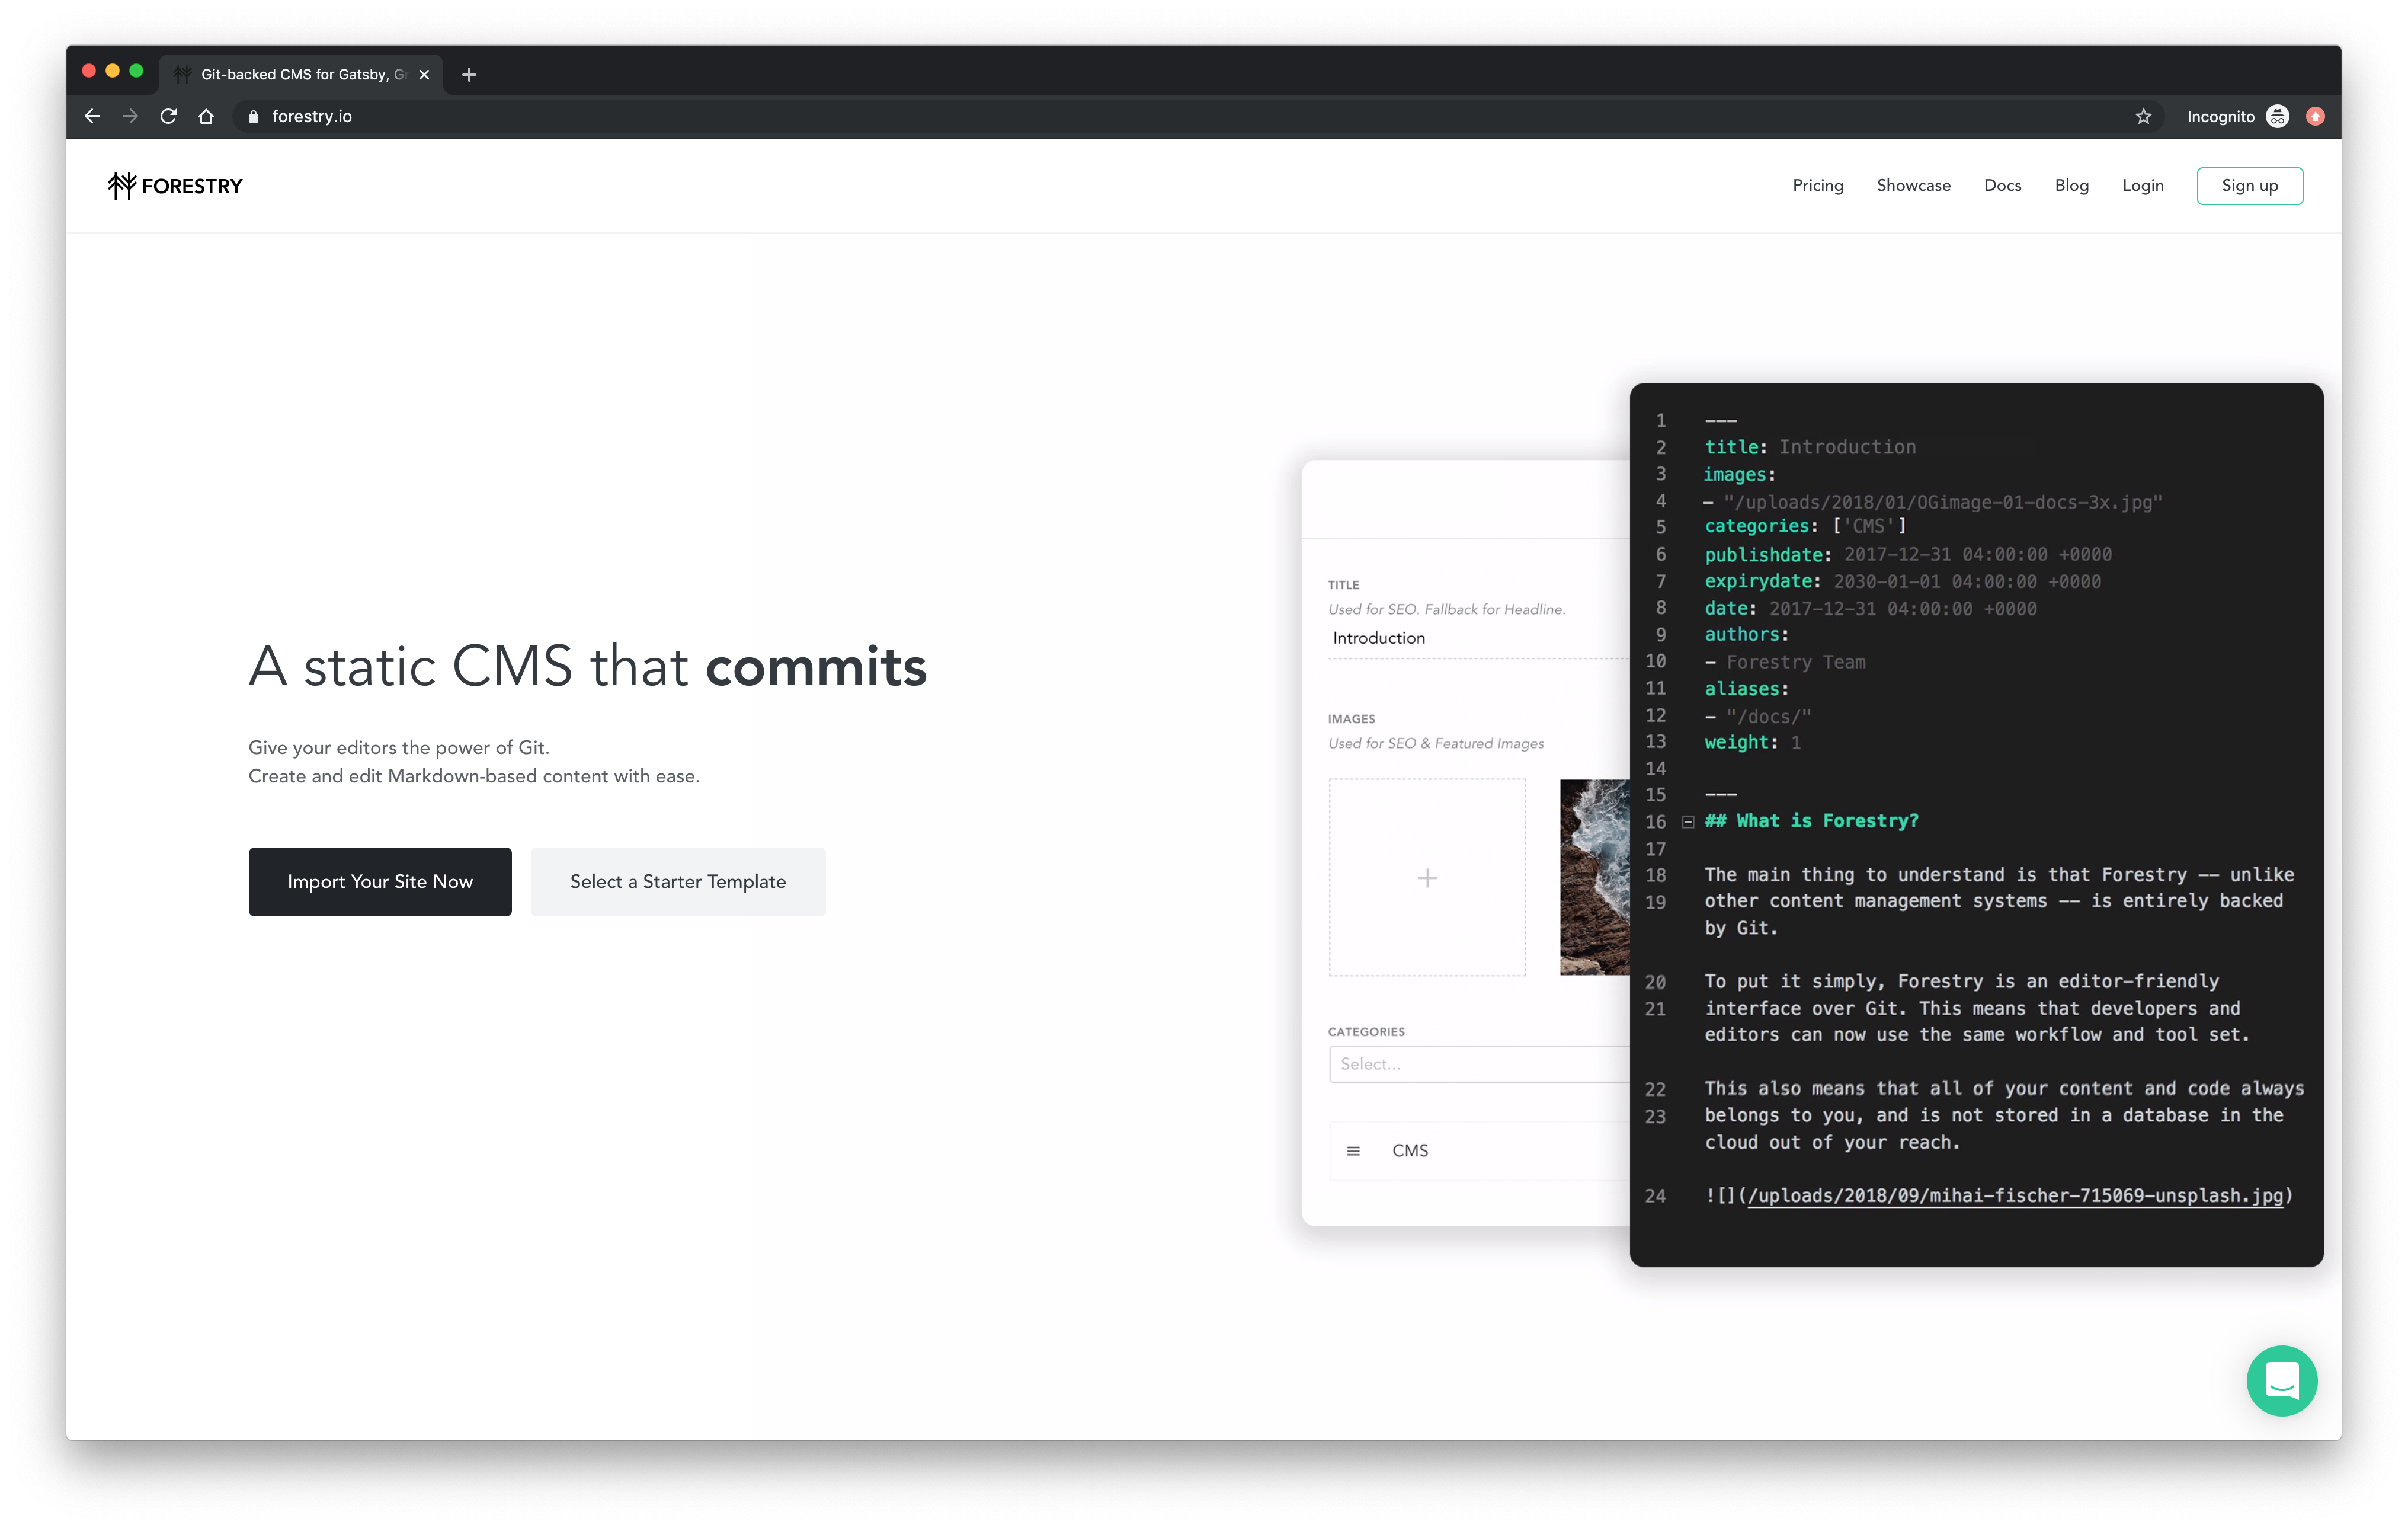 forestry.io-headless-cms.png